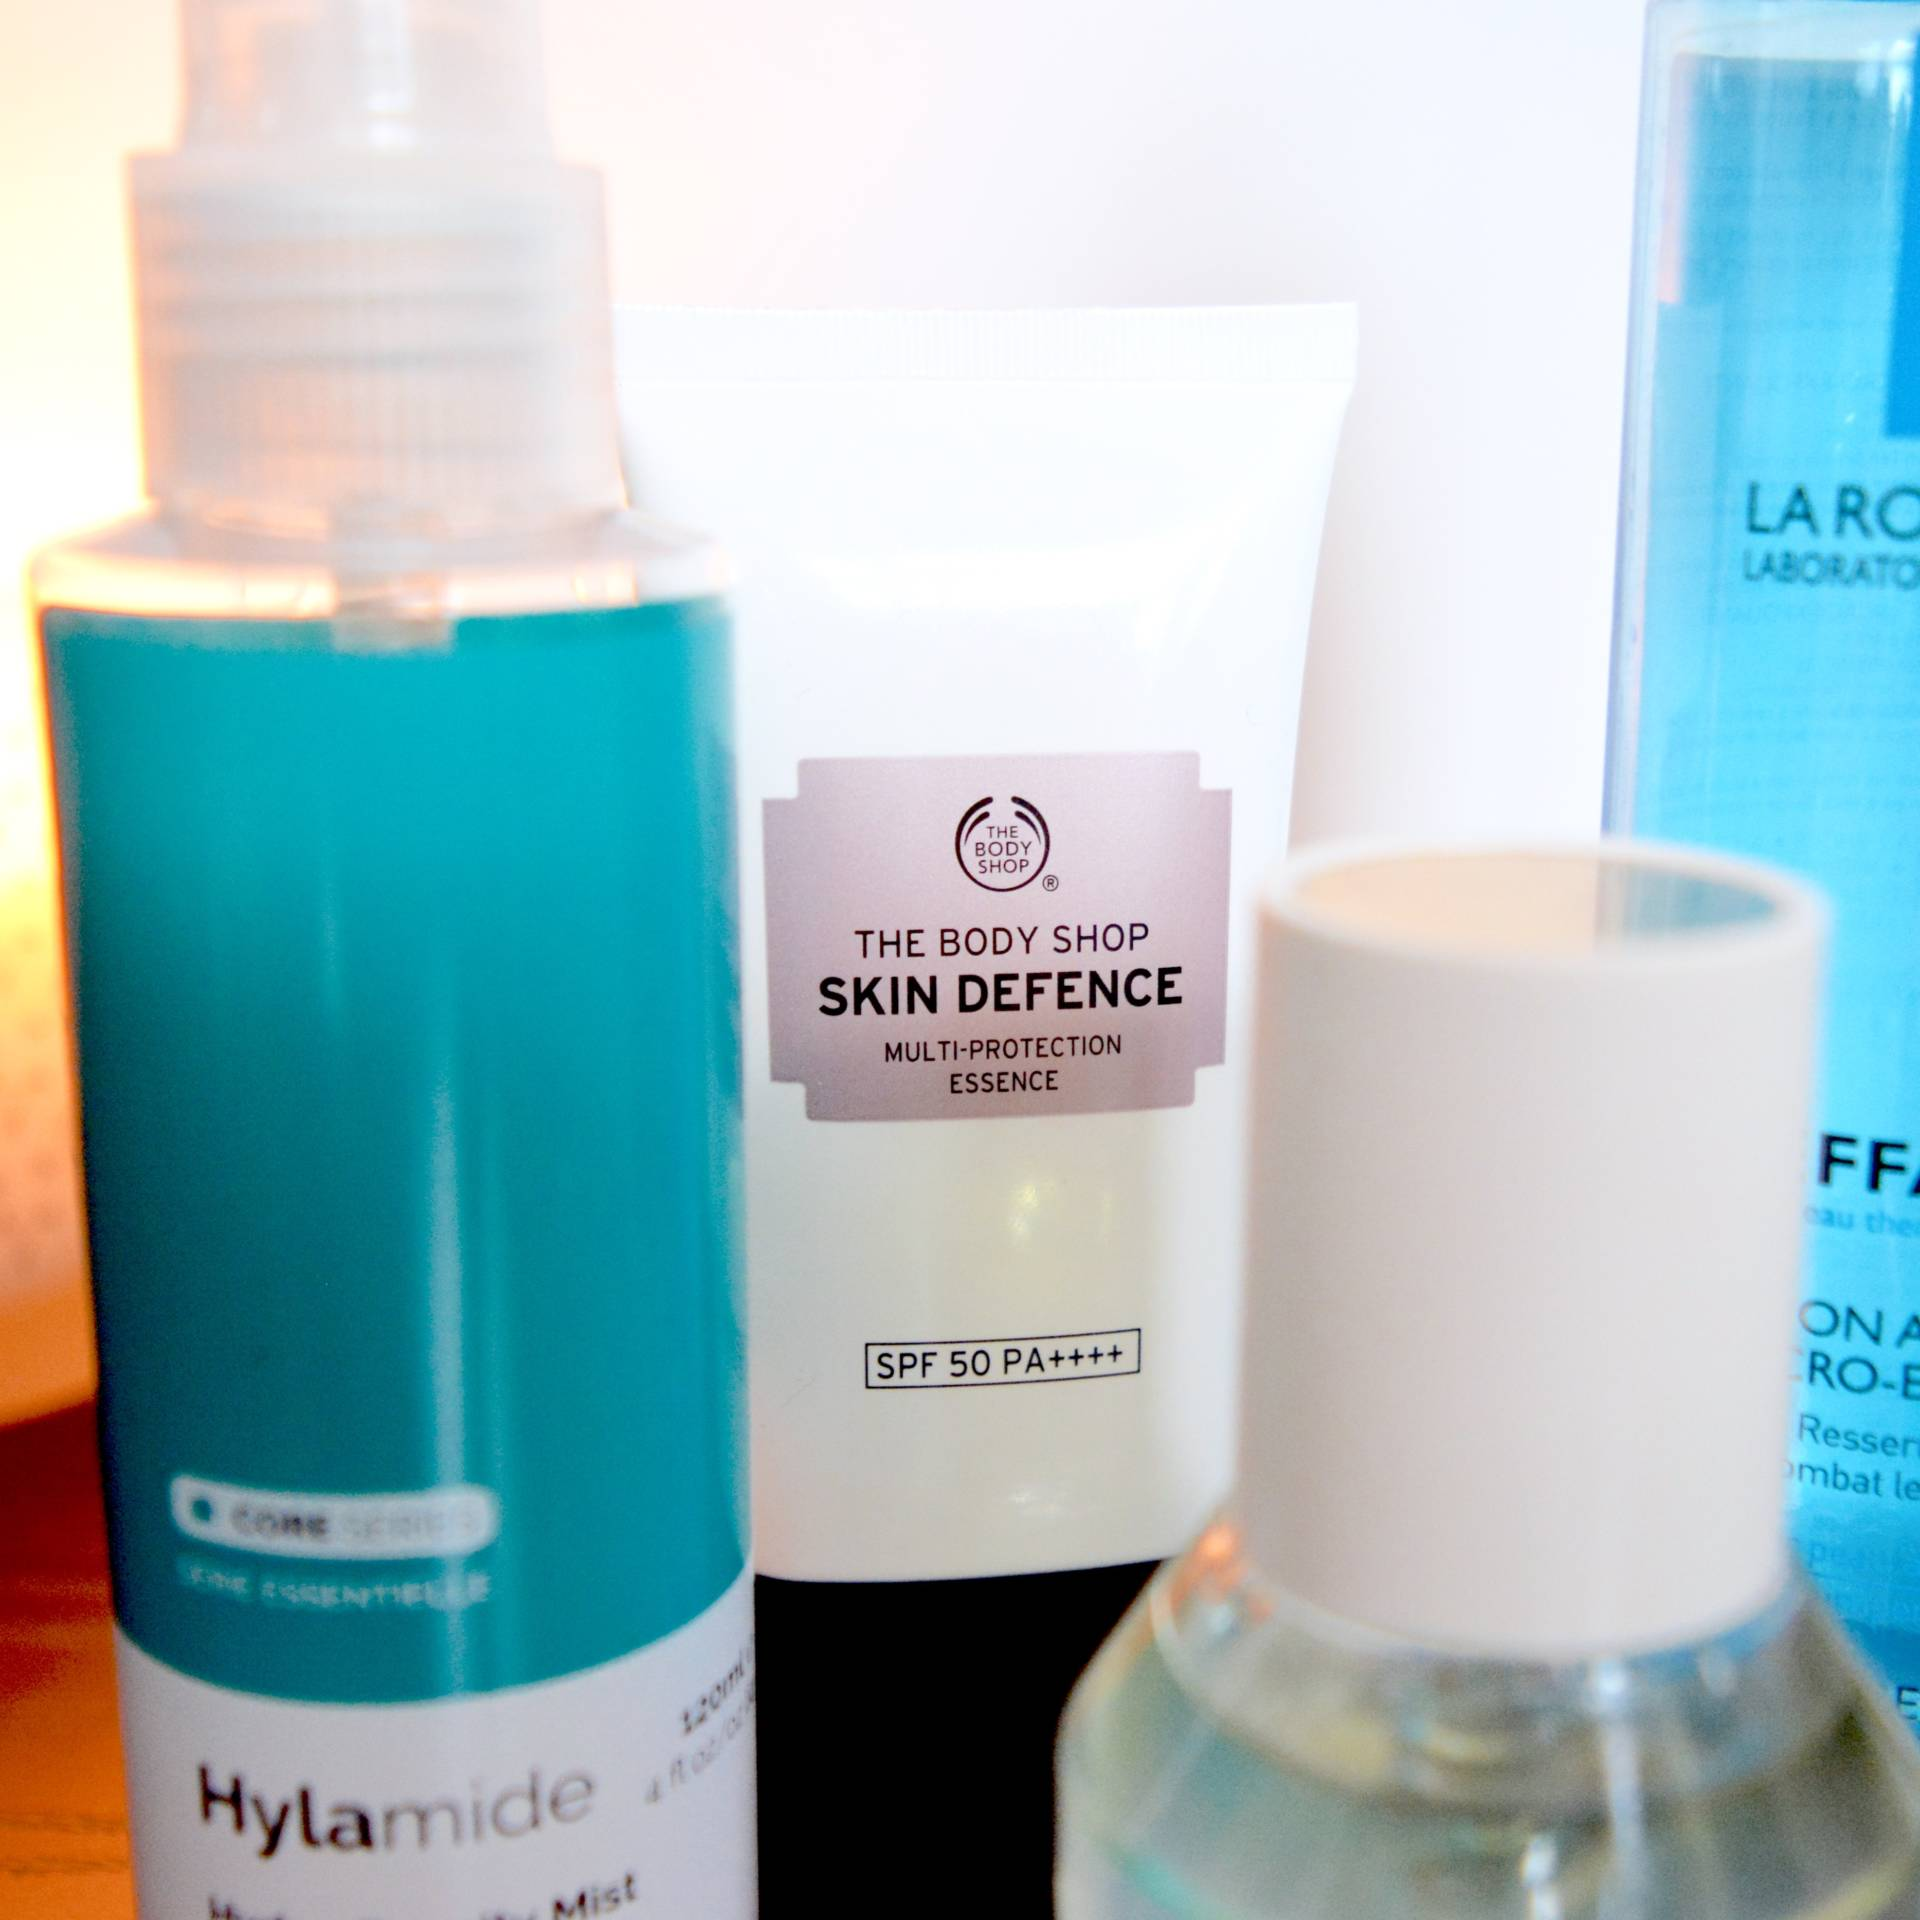 Skincare for rosacea and sensitive skin - The Body Shop Skin Defence Essence